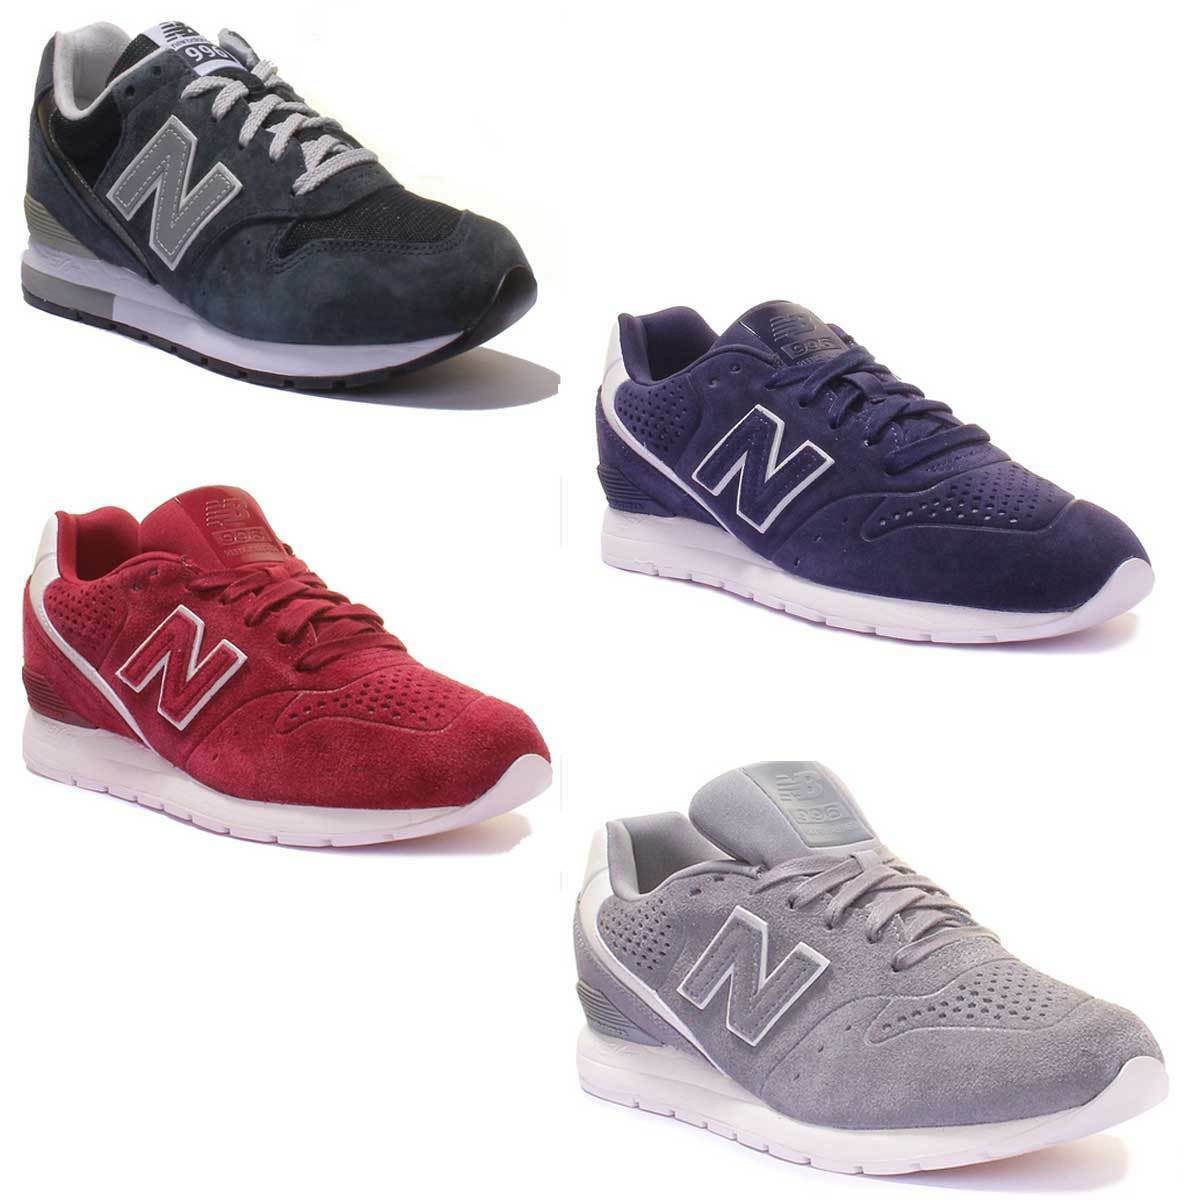 New Balance MRL996 Unisex Suede Leather Trainers